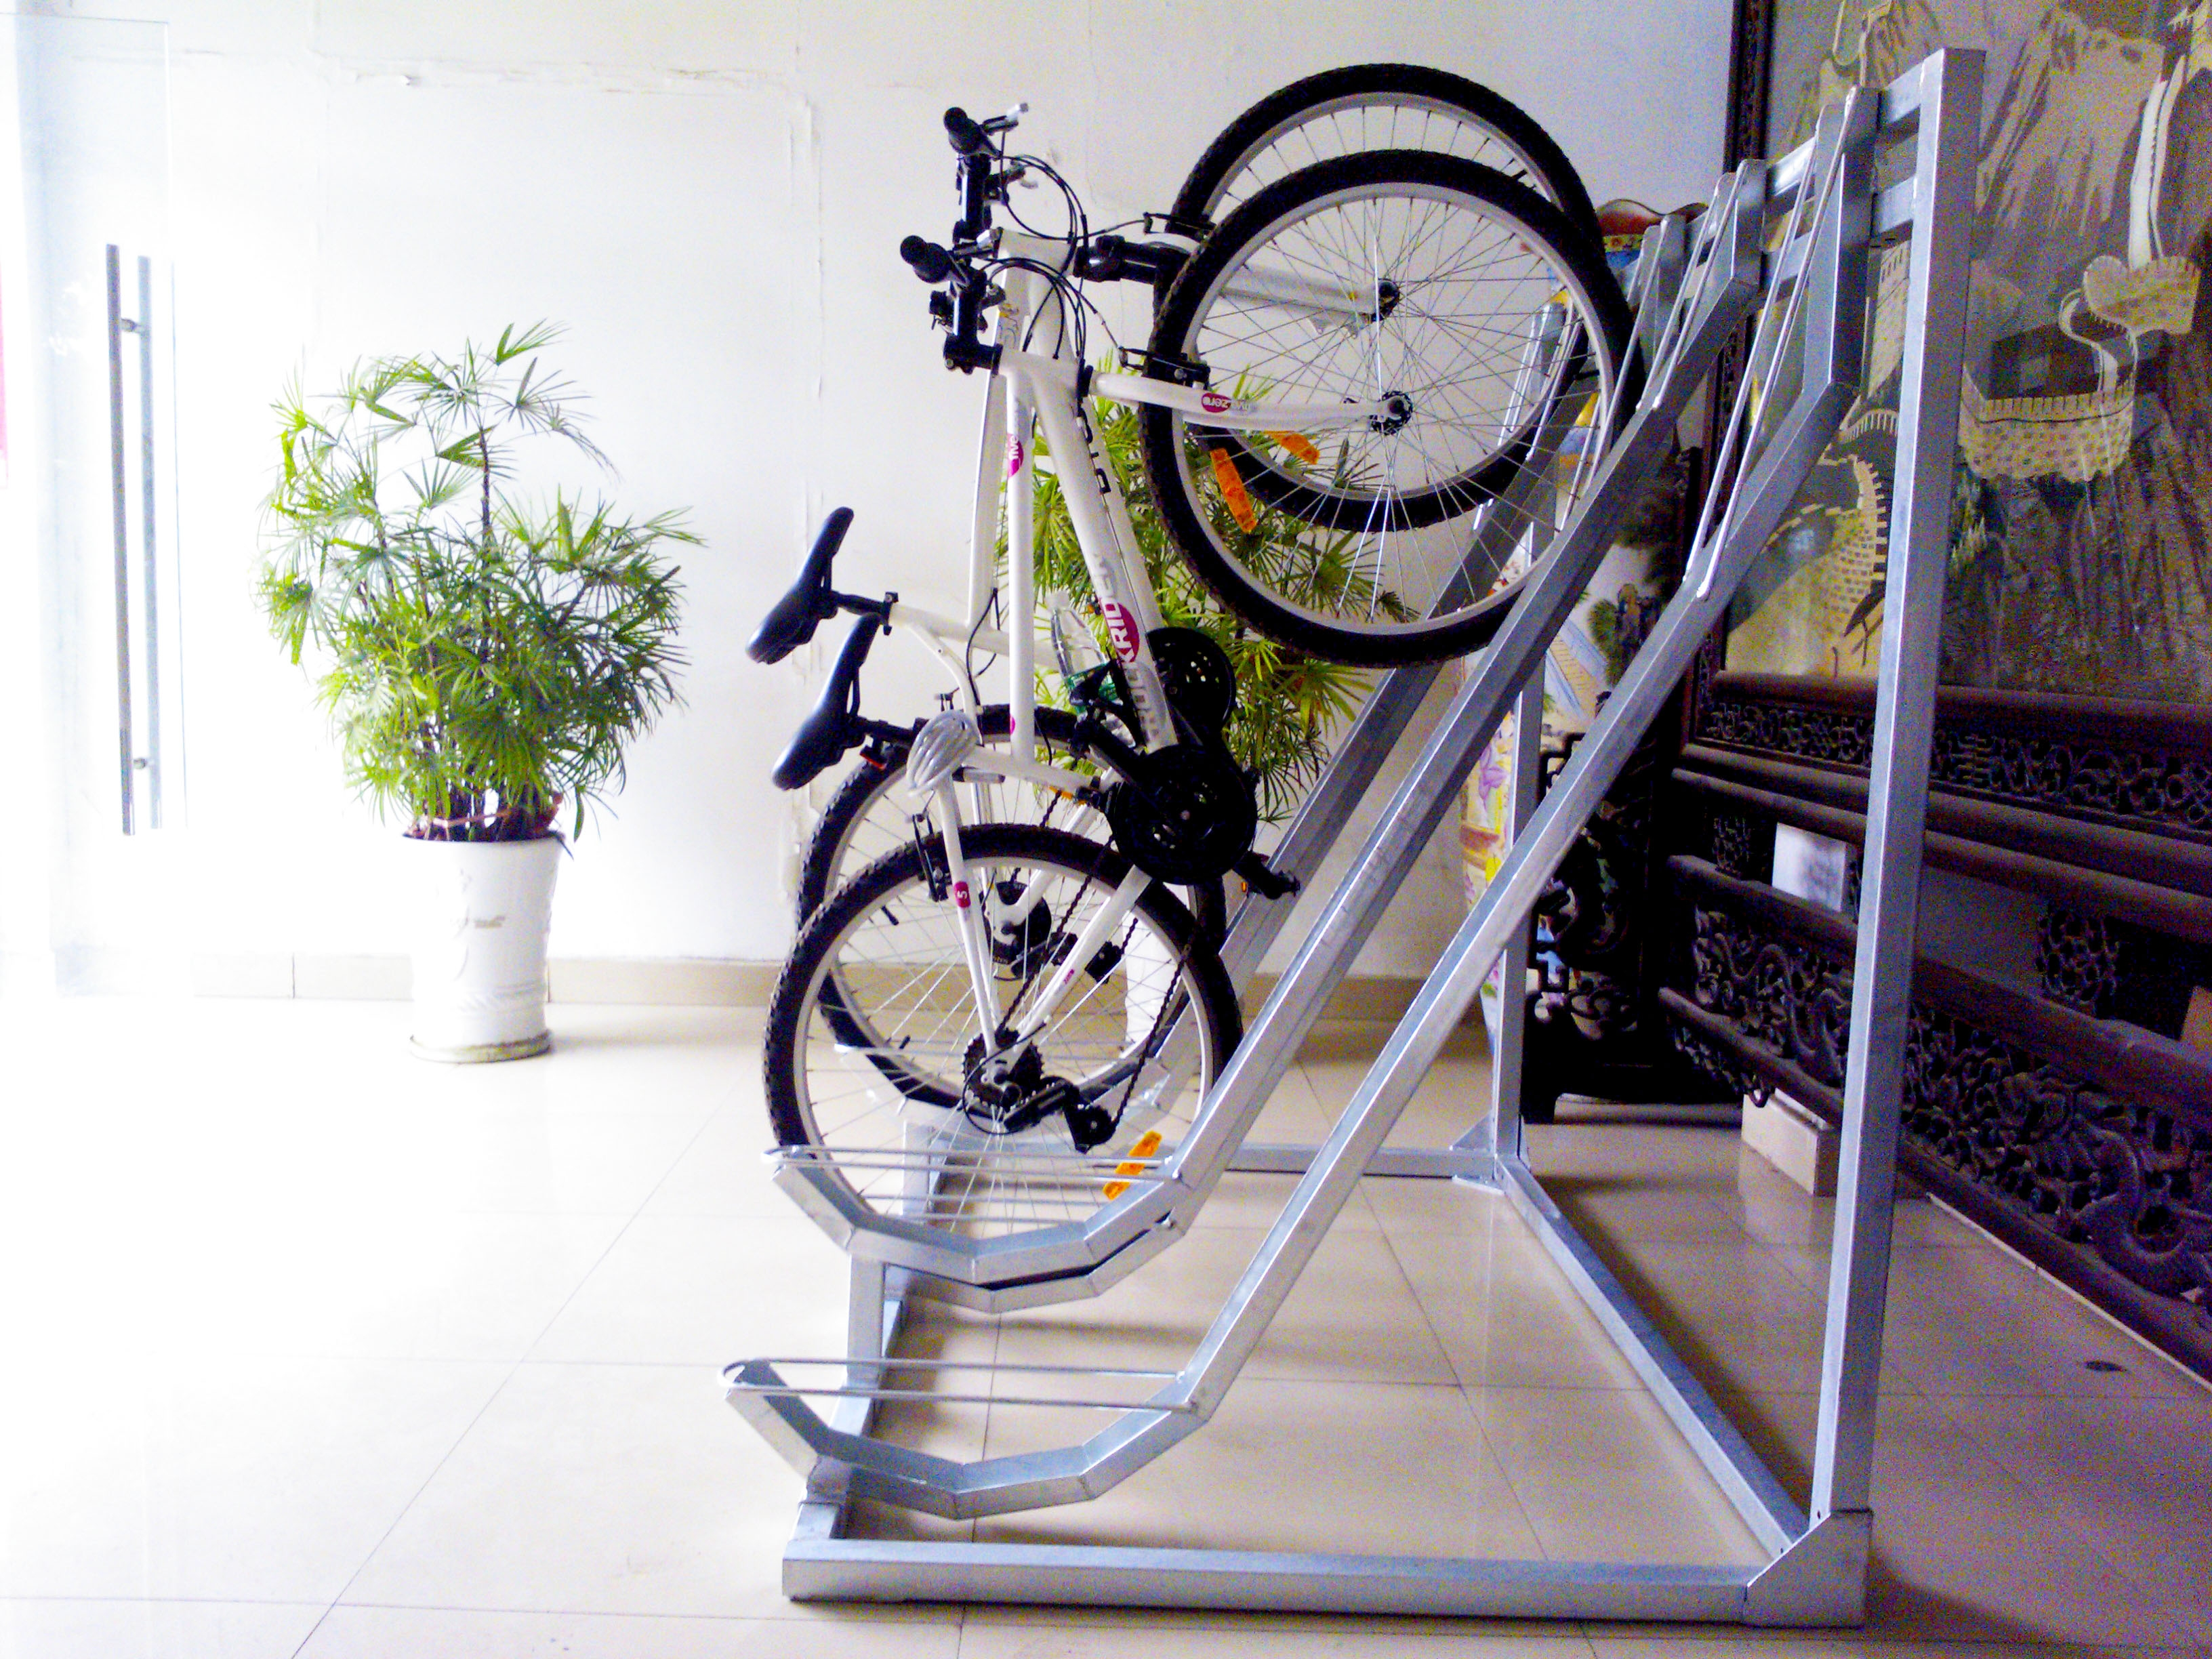 Outdoor 4 bikes galvanized semi bicycle racks Outdoor bicycle